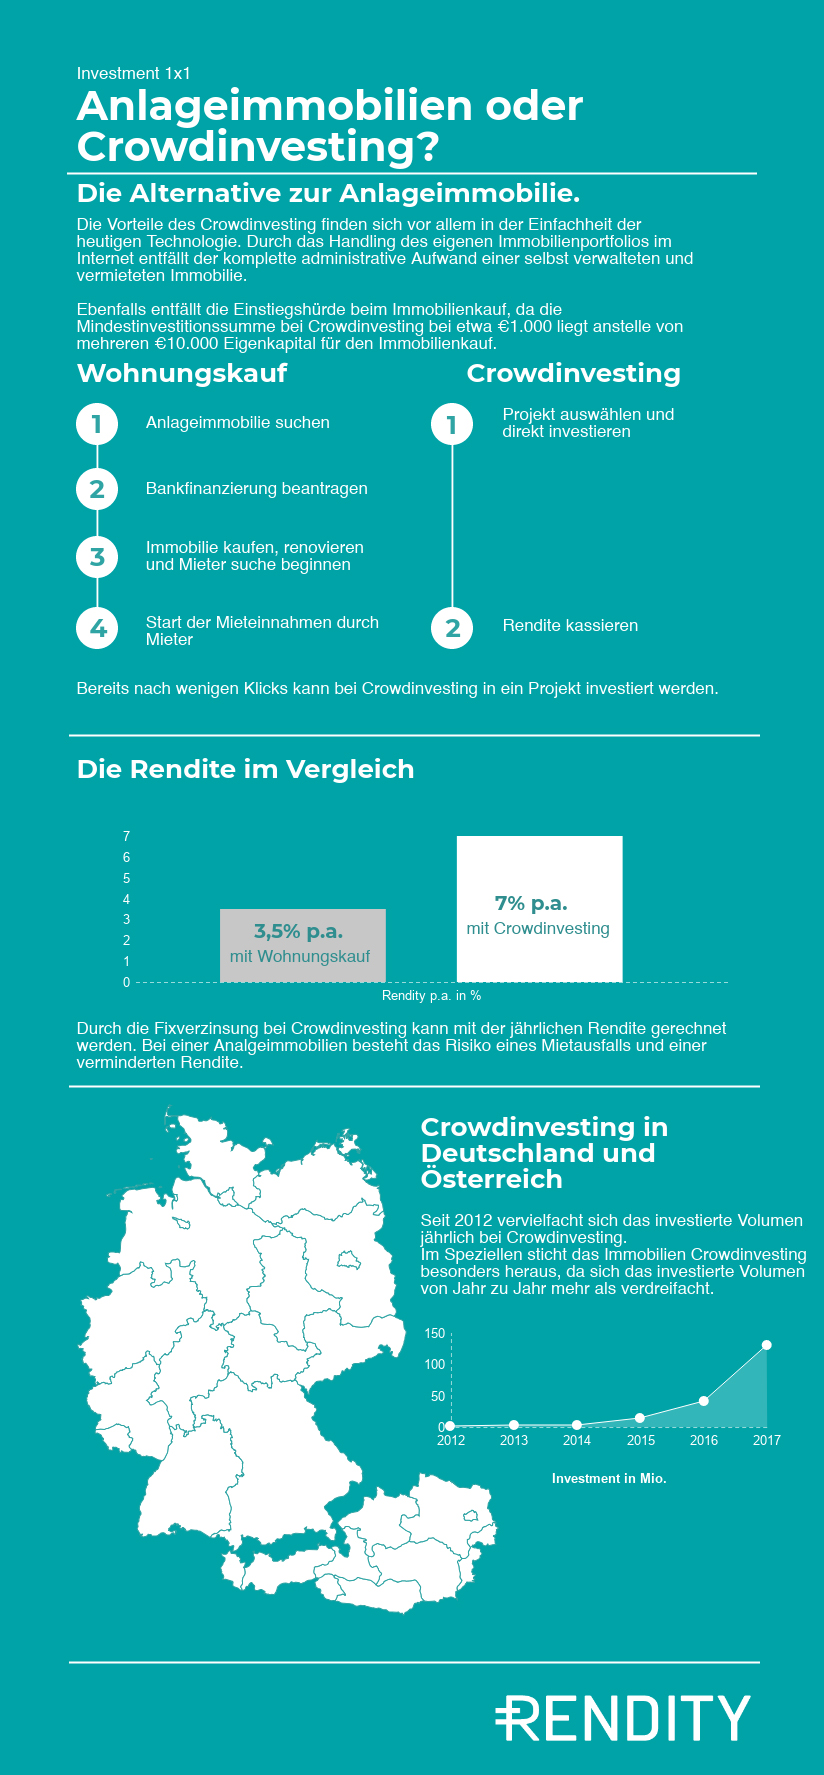 Crowdinvesting als Alternative zu Anlegerimmobilien